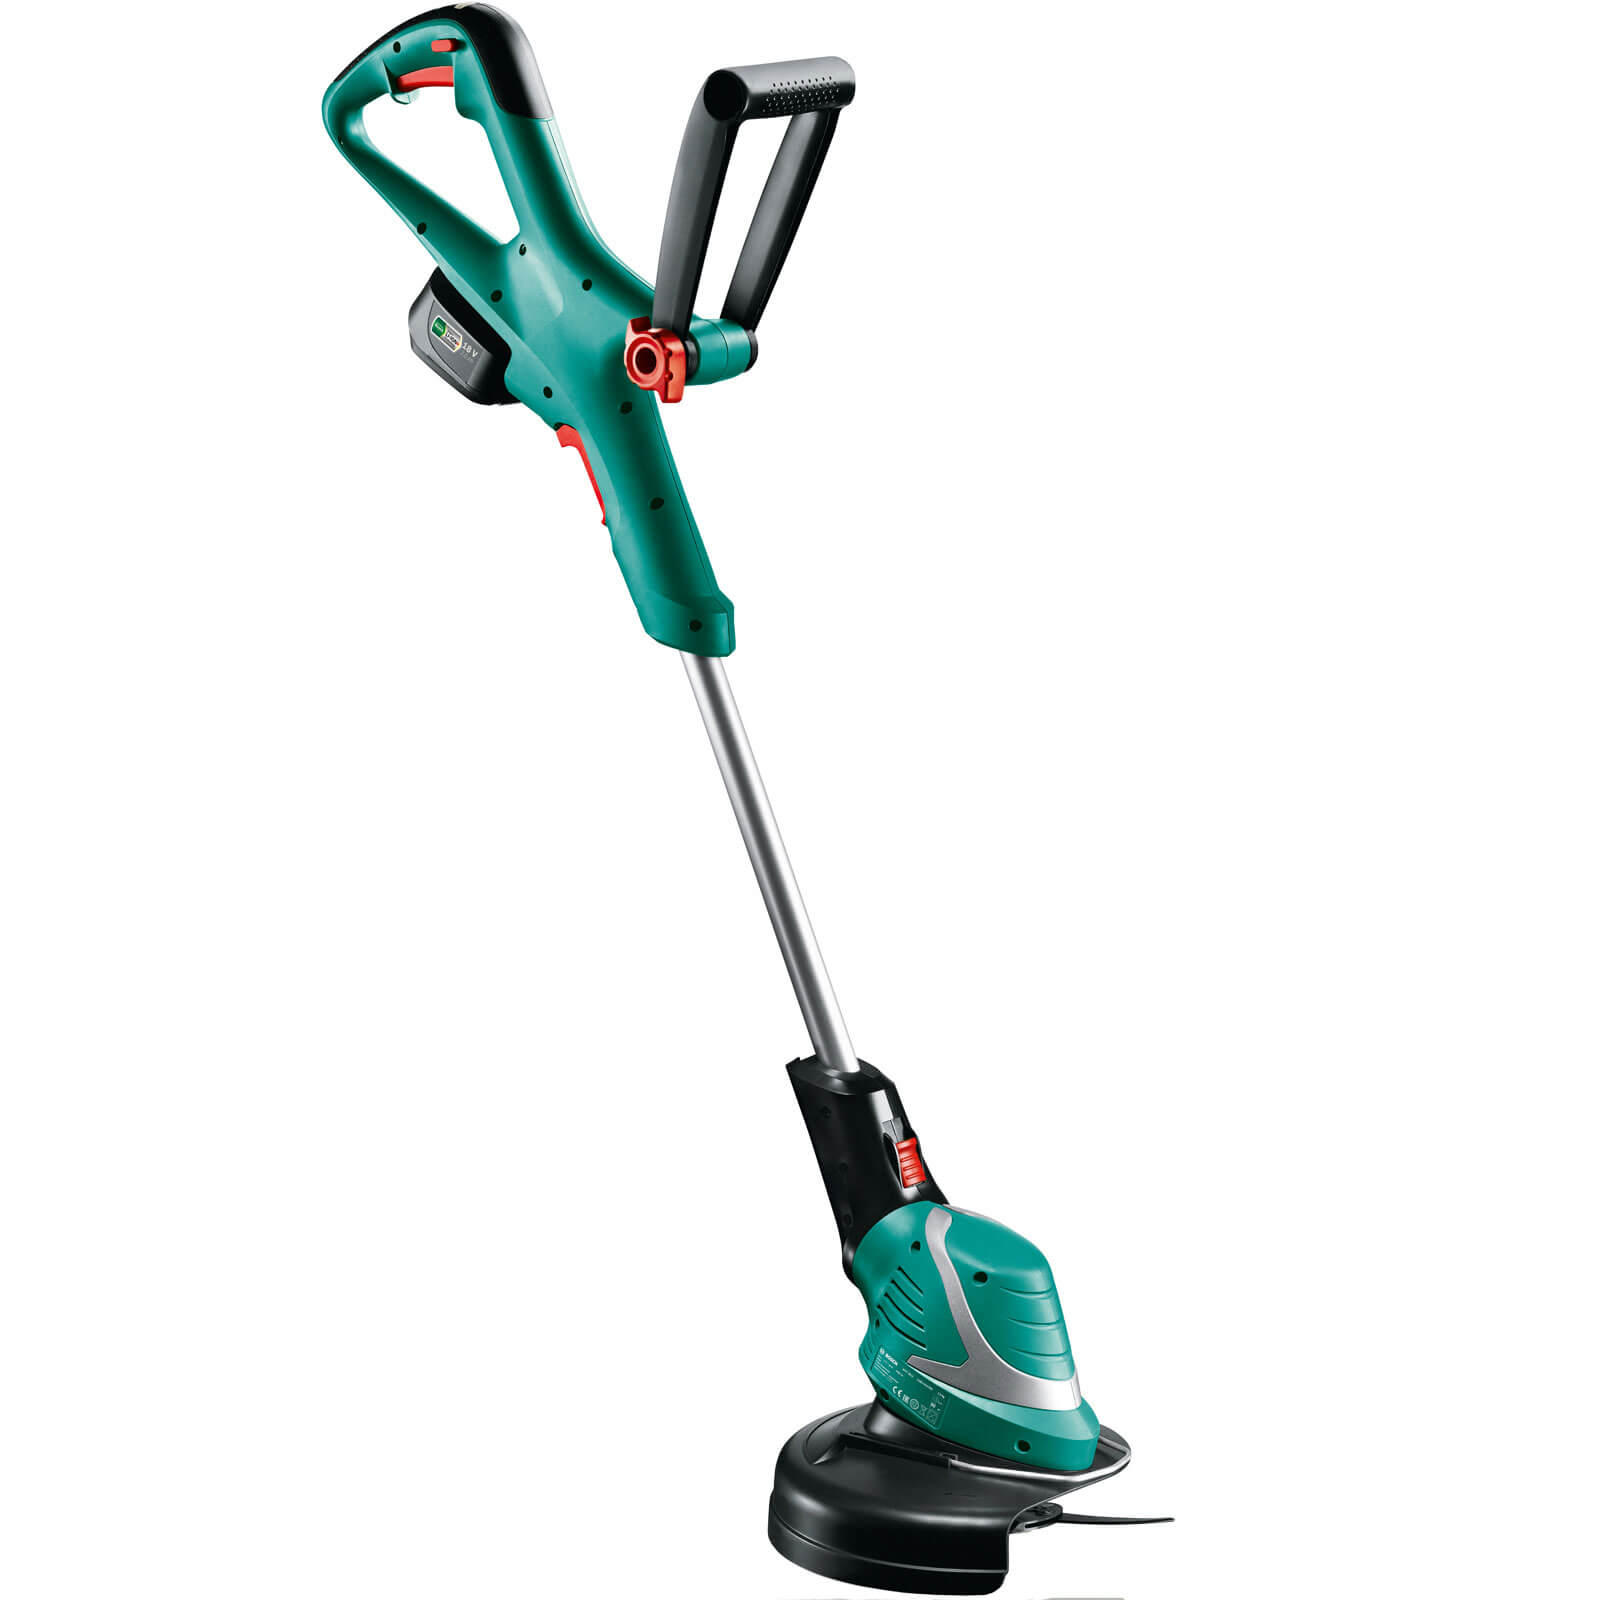 bosch art 26 18 li 18v cordless grass trimmer 260mm. Black Bedroom Furniture Sets. Home Design Ideas